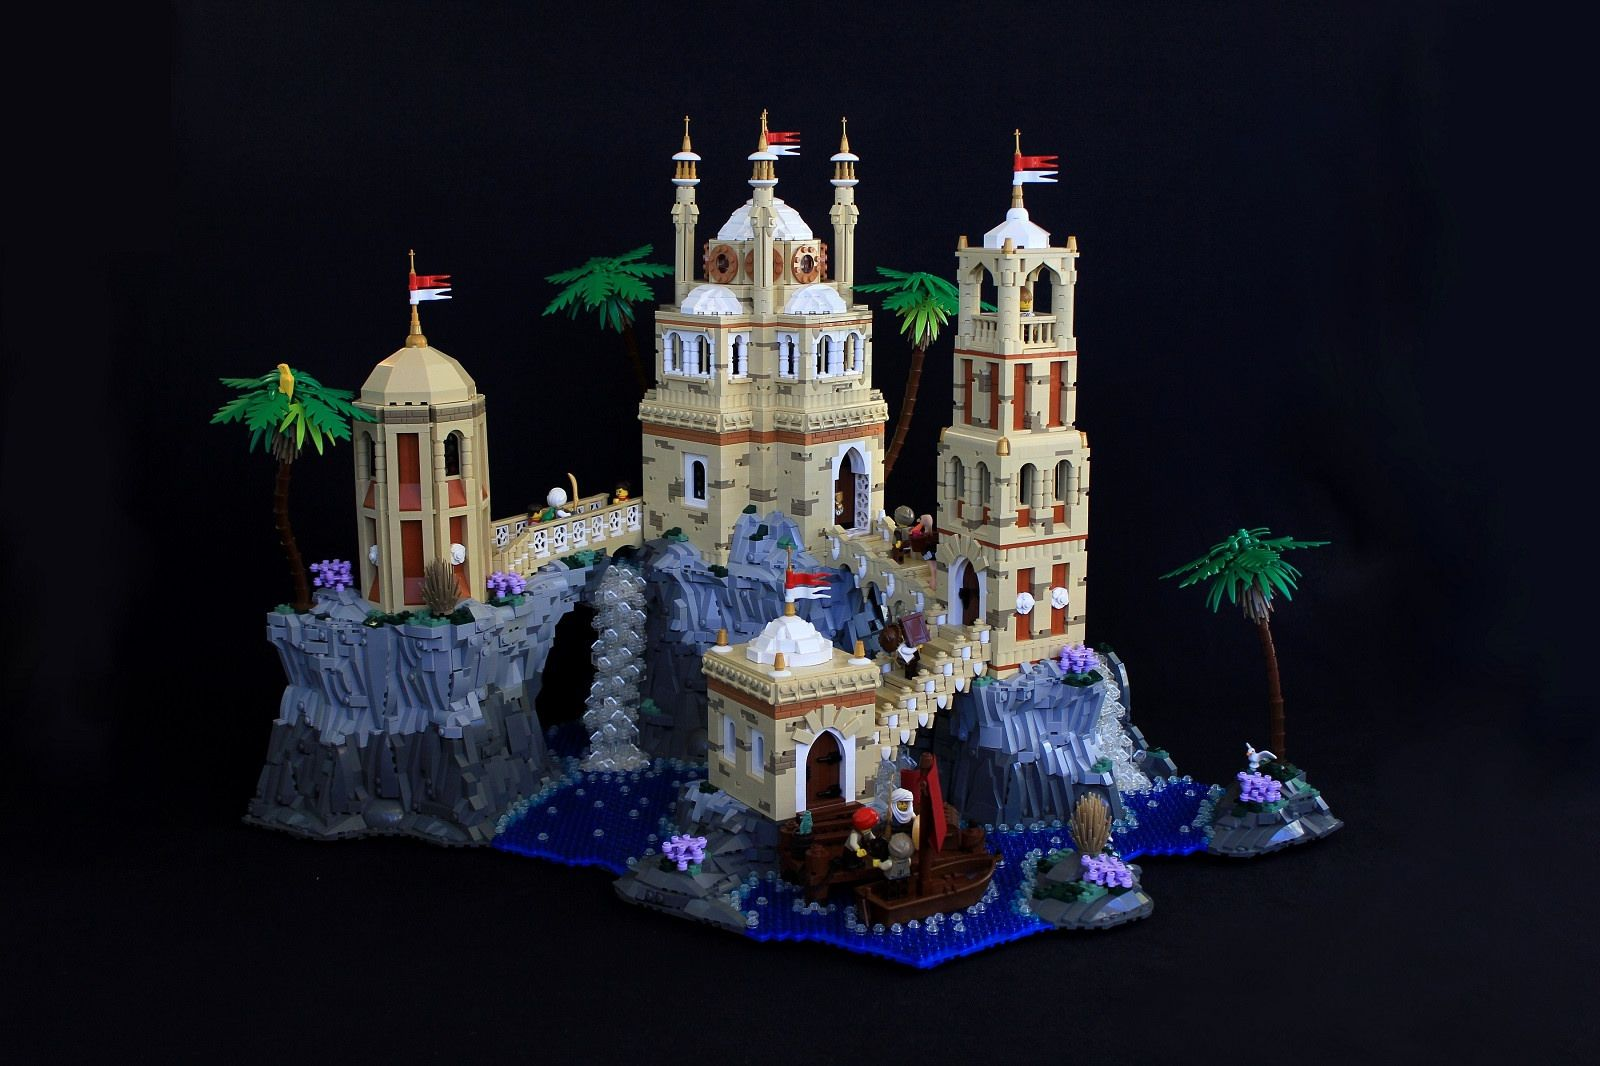 https://flic.kr/p/PmhRj9 | Qasr Albahr | Built for the large miscellaneous category of the 14th Colossal Castle Contest. The scene was inspired by this image: img03.deviantart.net/4e75/i/2011/183/7/0/fantasy_matte_pa.... It took about 2 weeks to build, and weighs 24.8 pounds, making it my largest solo build ever. Setting up the buildings layout and connecting them via bridges was the most challenging part, though the rockwork was most time consuming to build.  Qasr Albahr is a large trade…